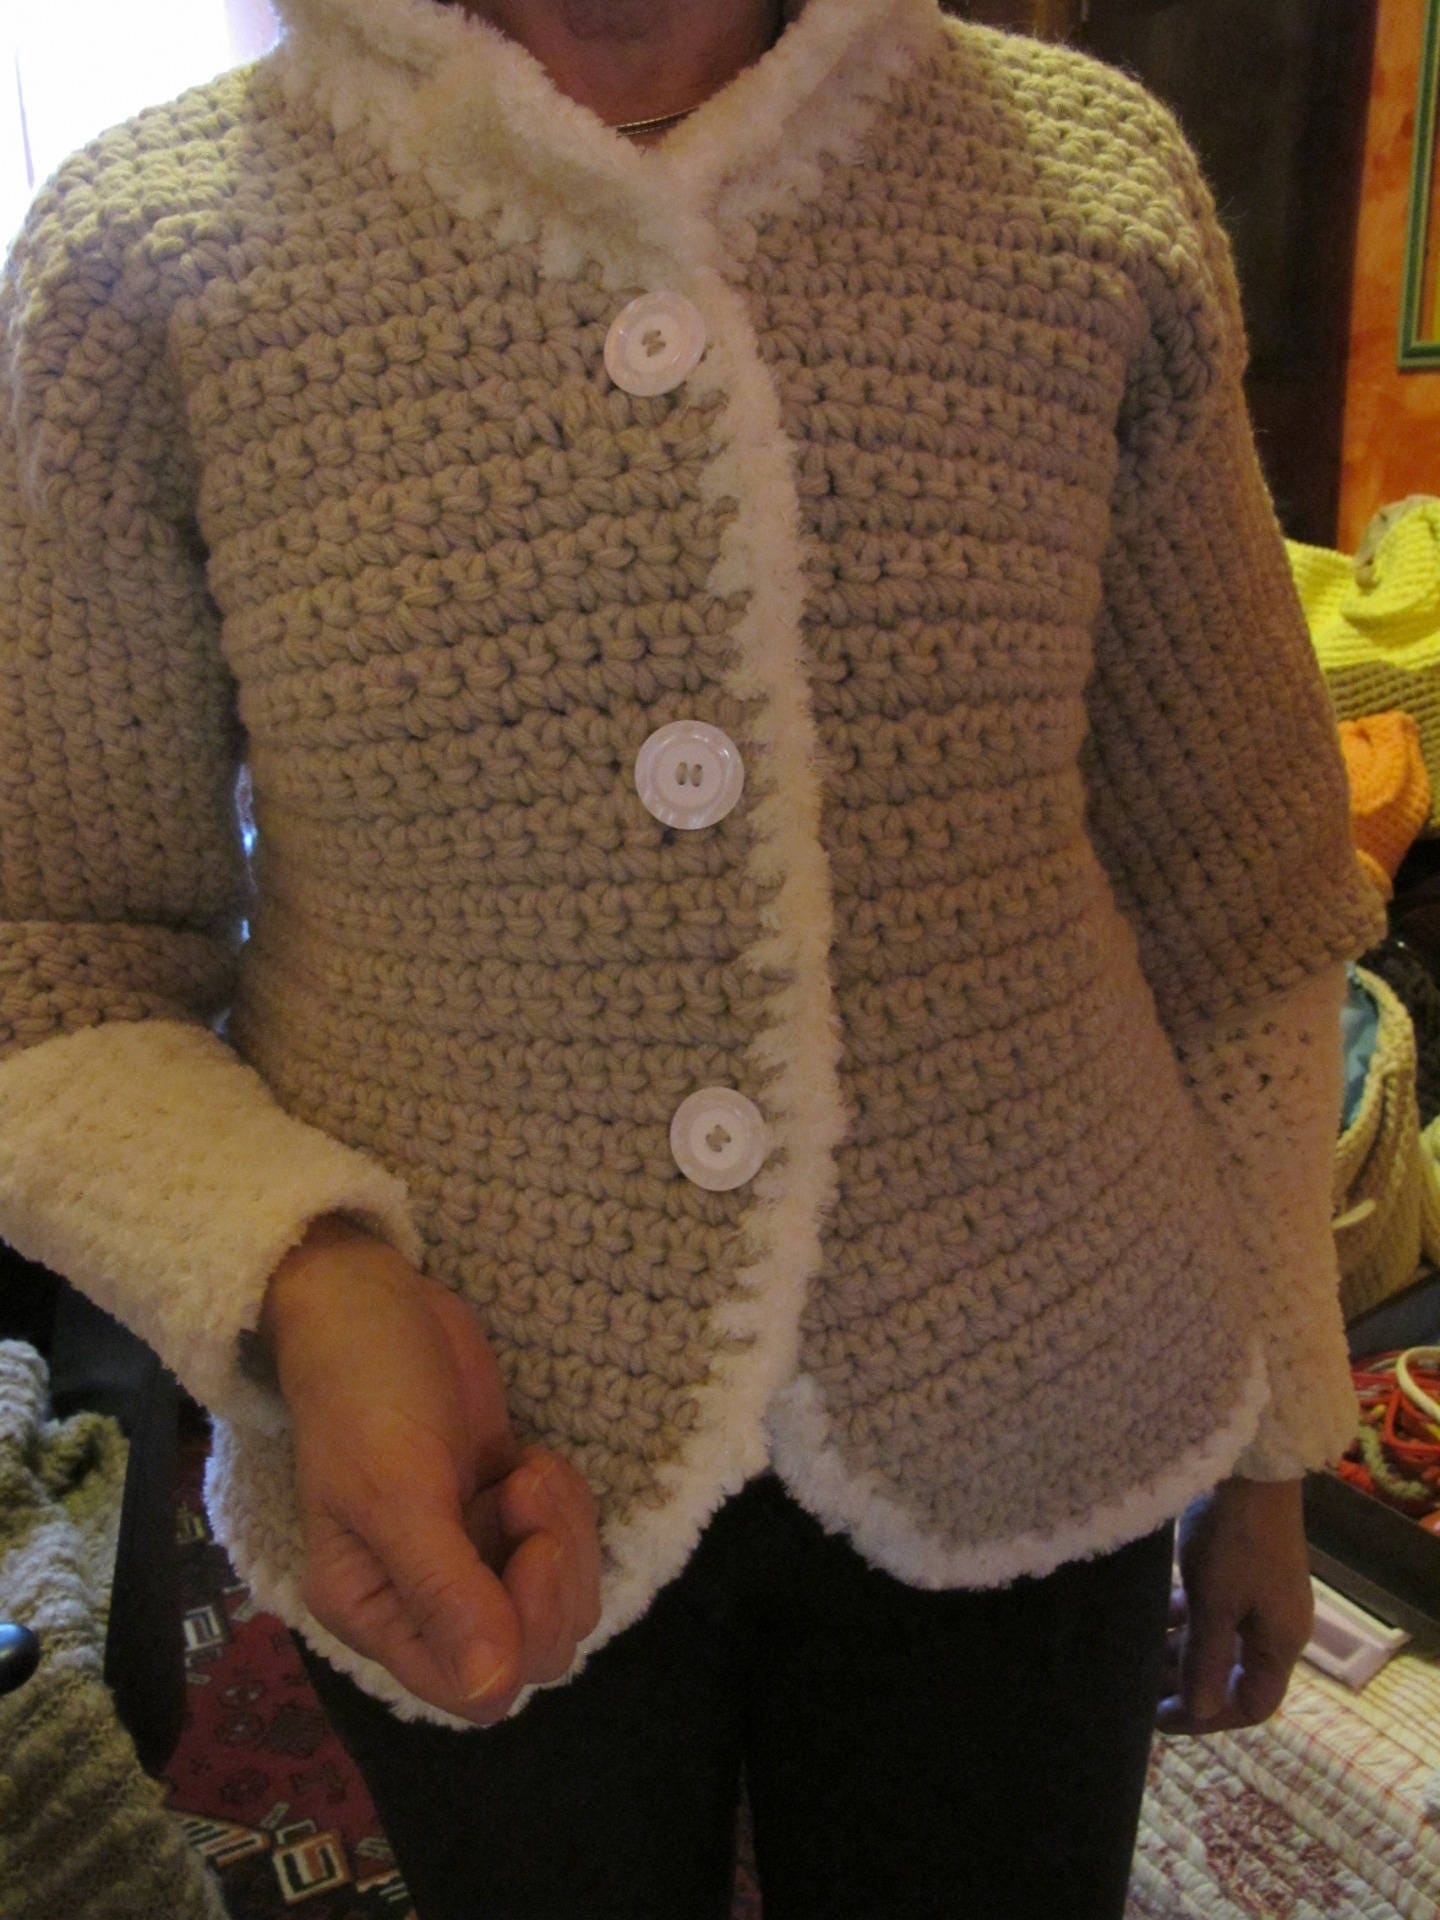 Giacca Giacca Lana In Lana All'uncinetto In Etsy All'uncinetto Etsy 5WqqnZRxS